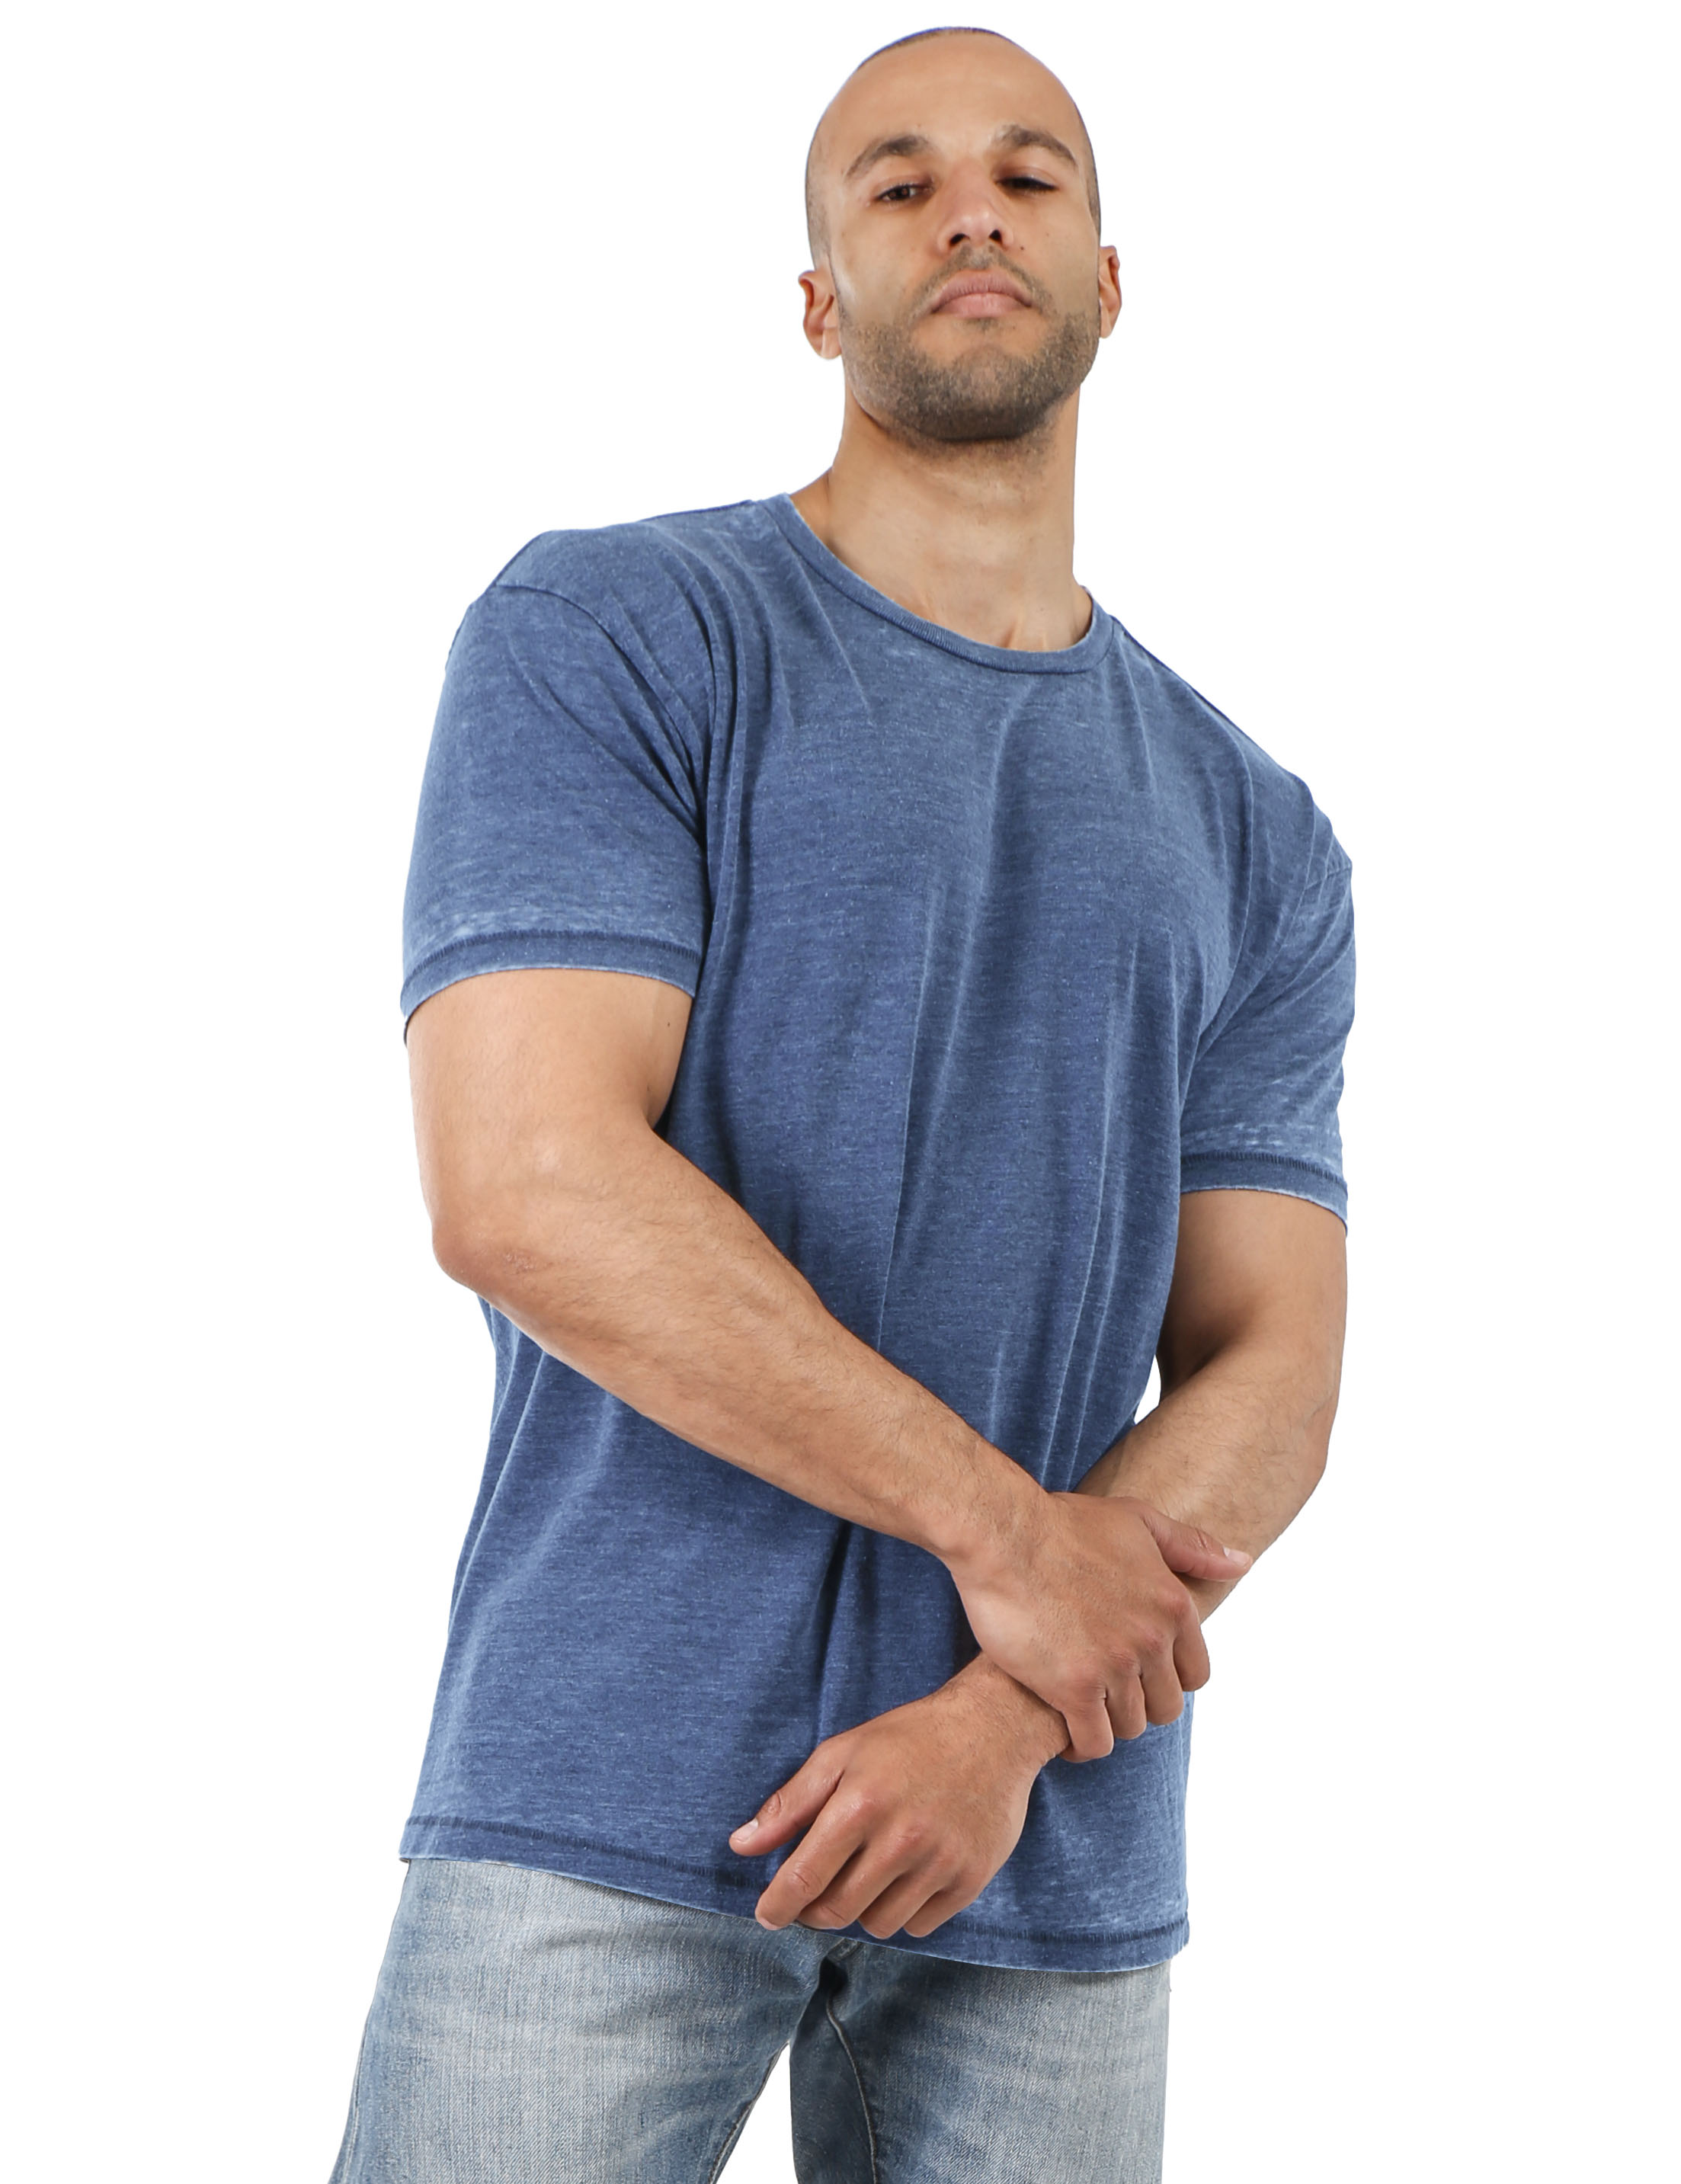 Mens-Vintage-T-Shirts-Washed-Burnout-Fade-Short-Sleeve-Basic-Crew-Neck-Tee thumbnail 23